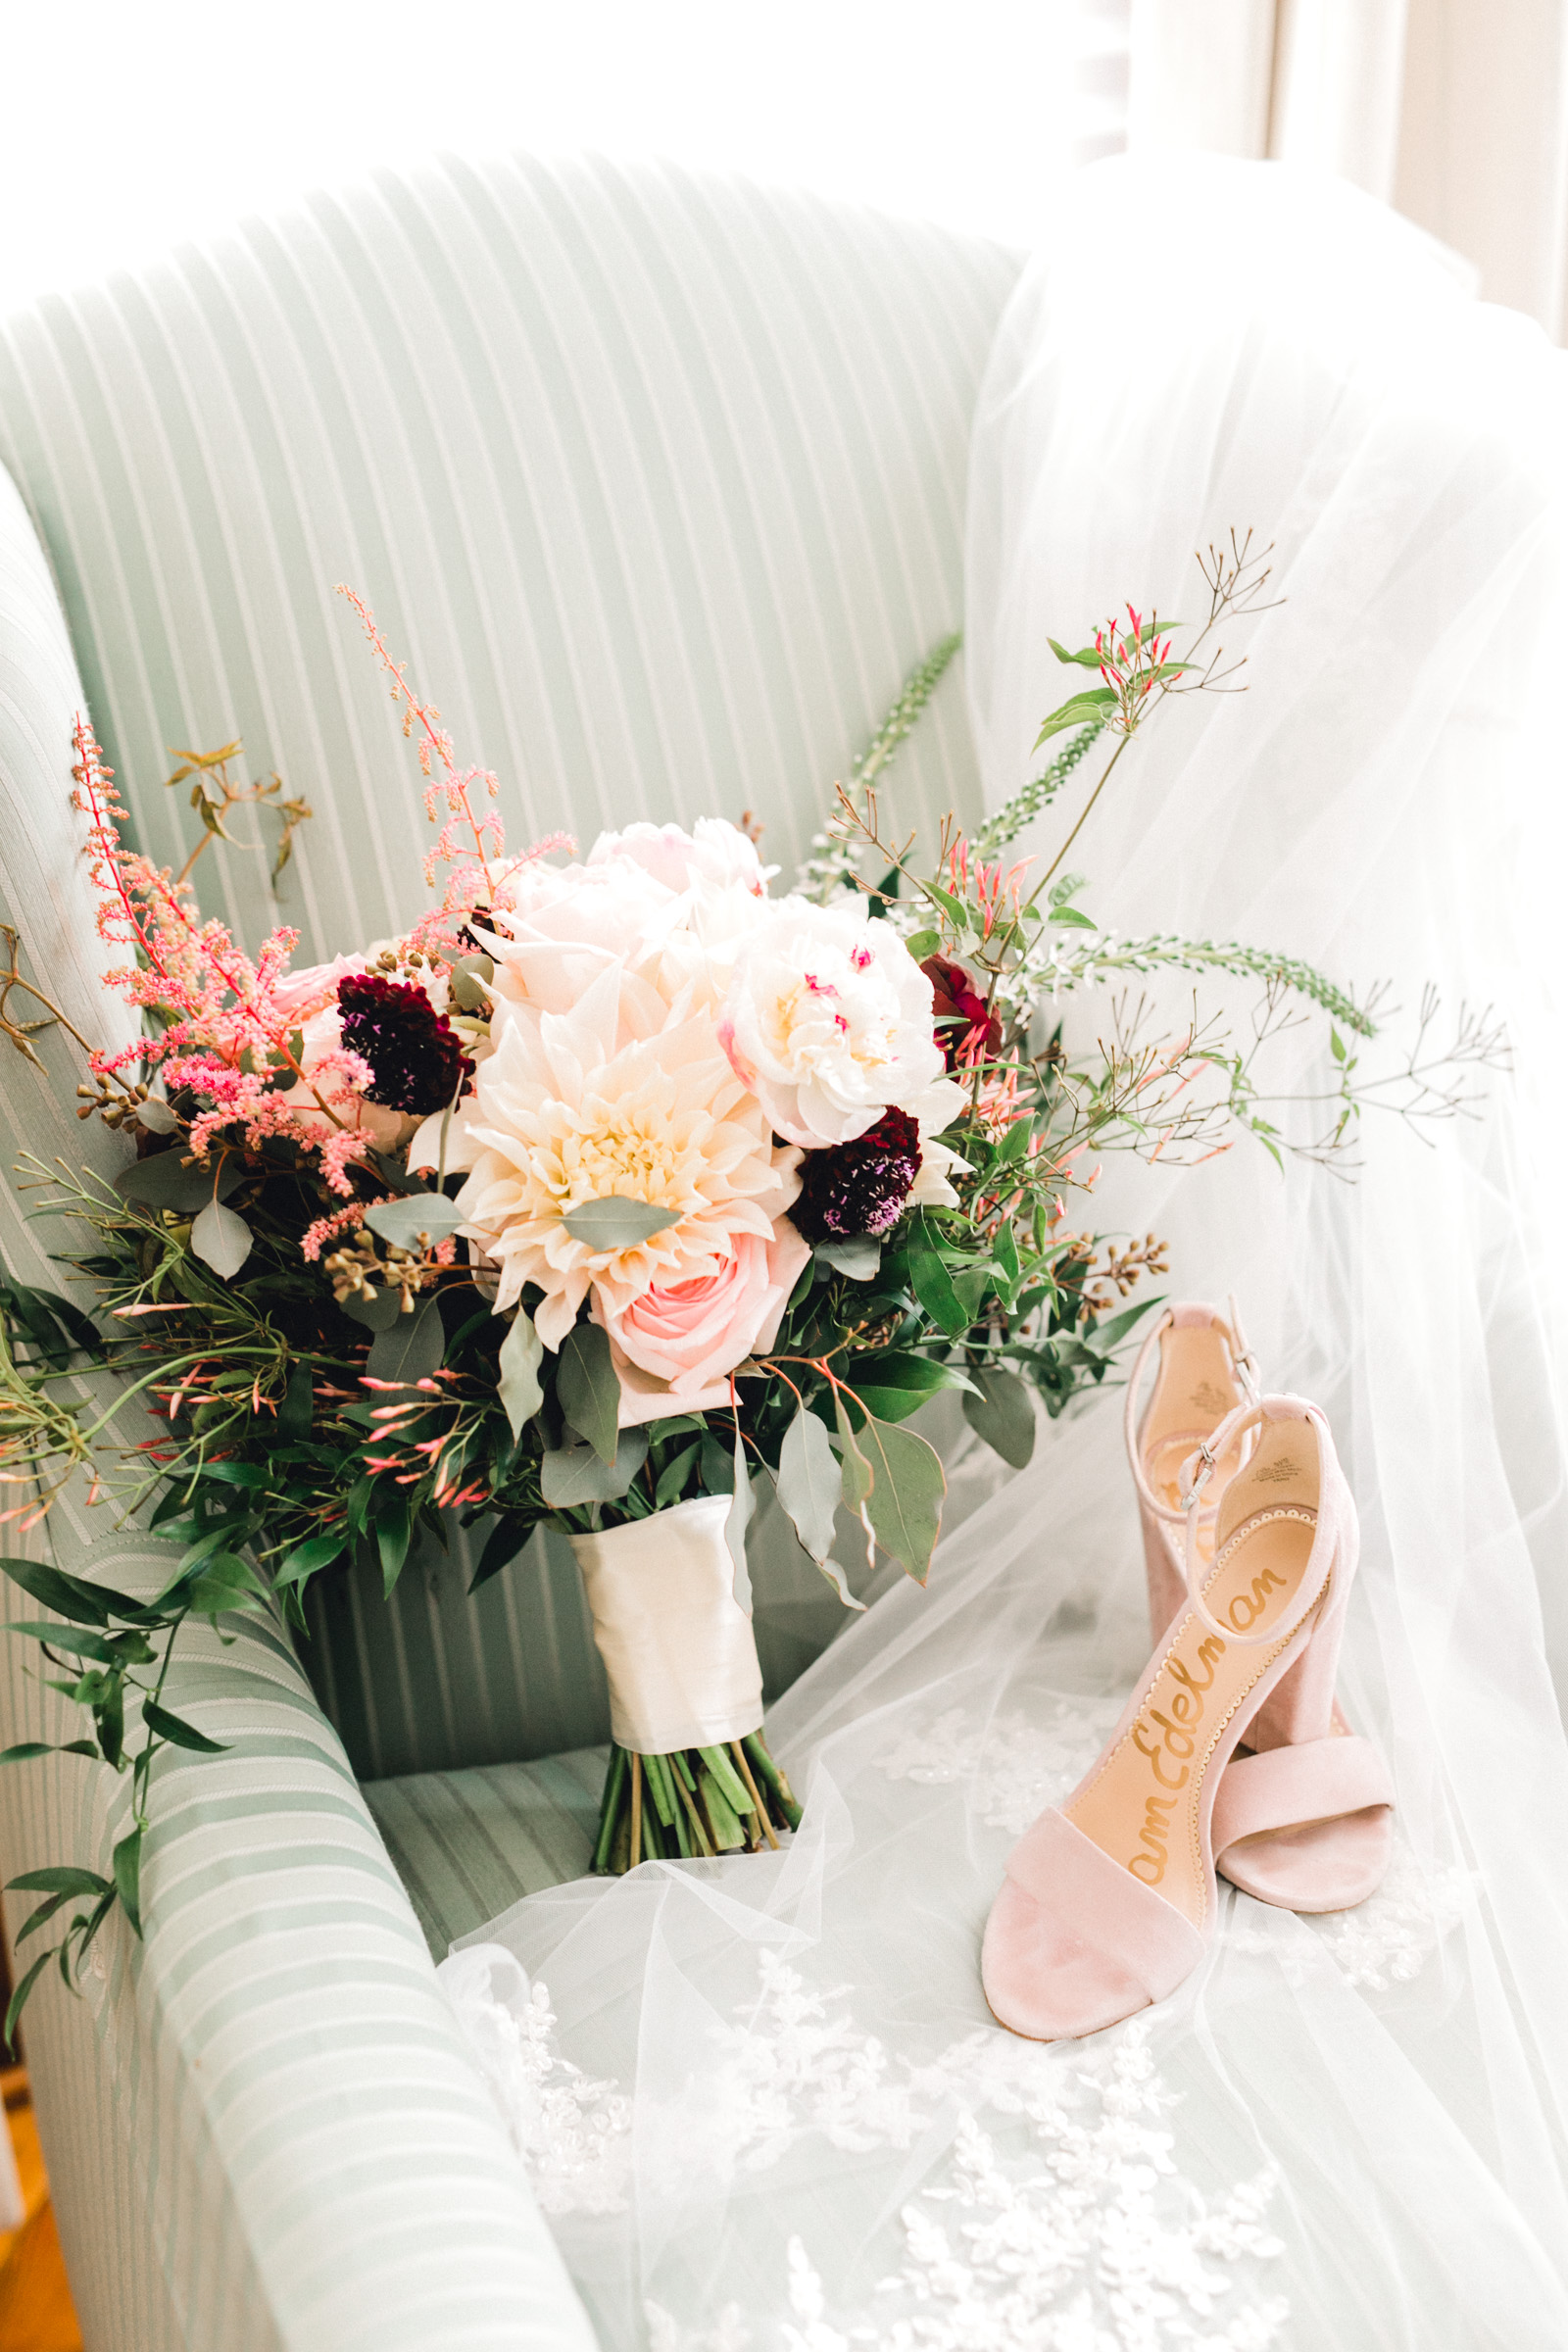 savannah wedding photographer katherine ives photography-8899.JPG